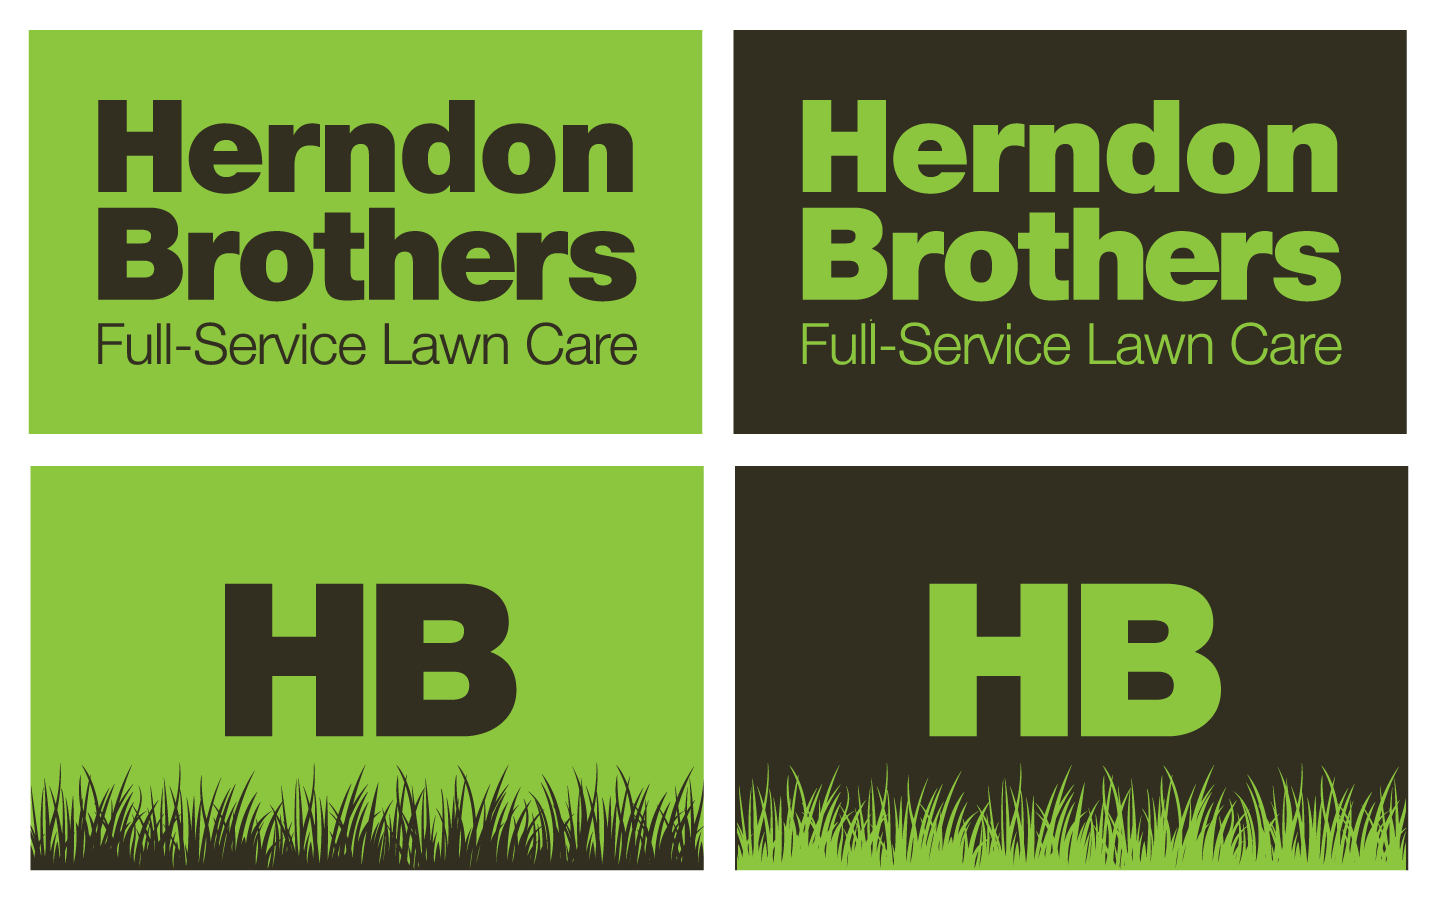 Herndon-Brothers-Lawn-Care_Print-Design_Business-Card_Dreamcapture_Memphis-TN